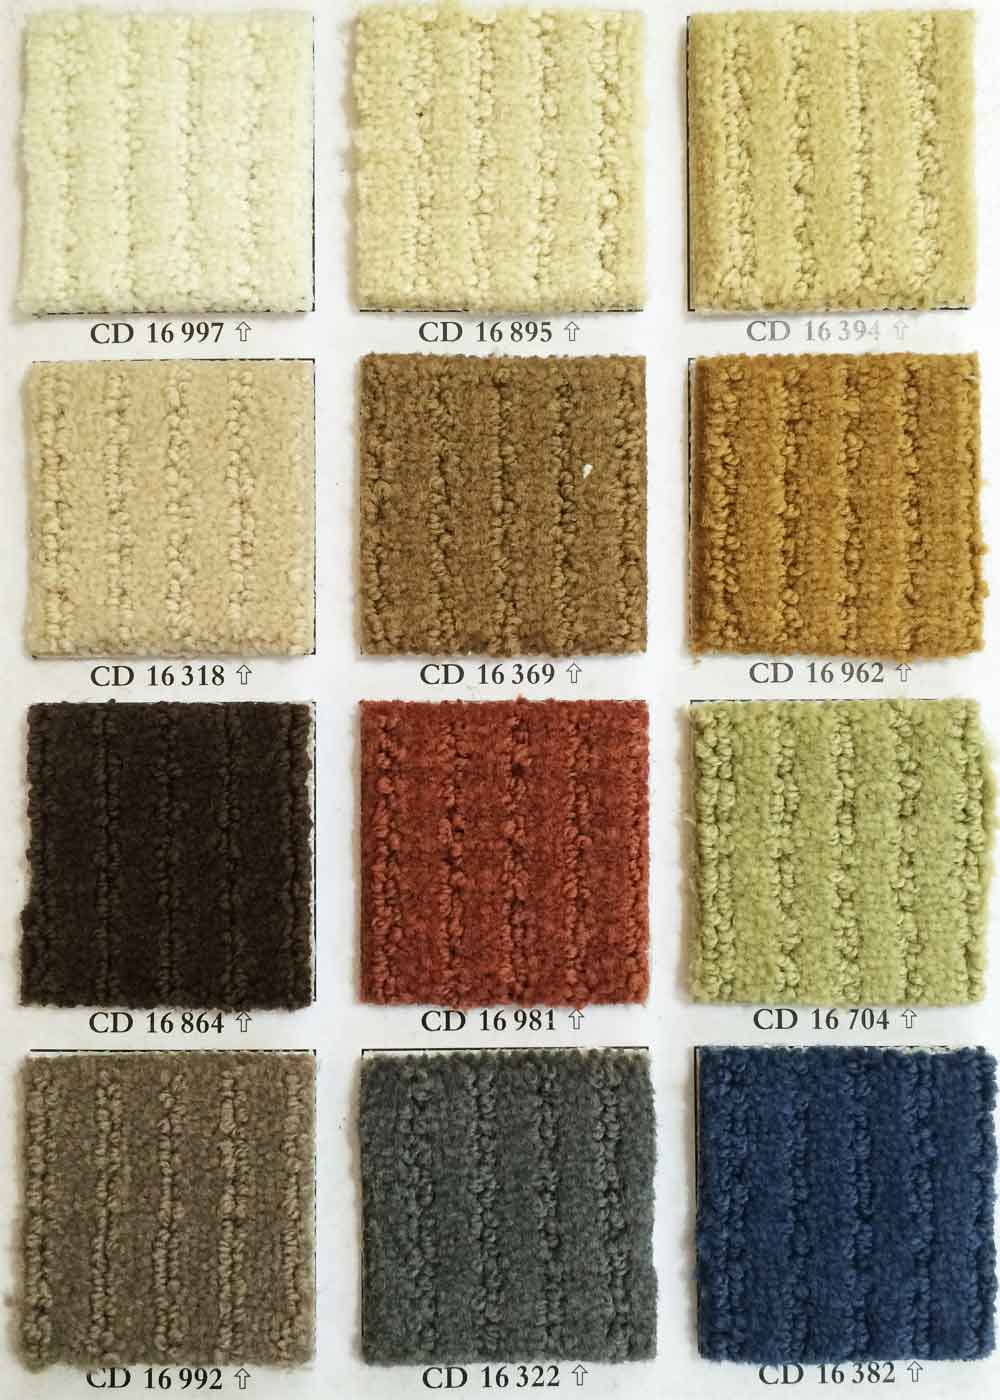 ... Filament Carpet Collection. Cassidy